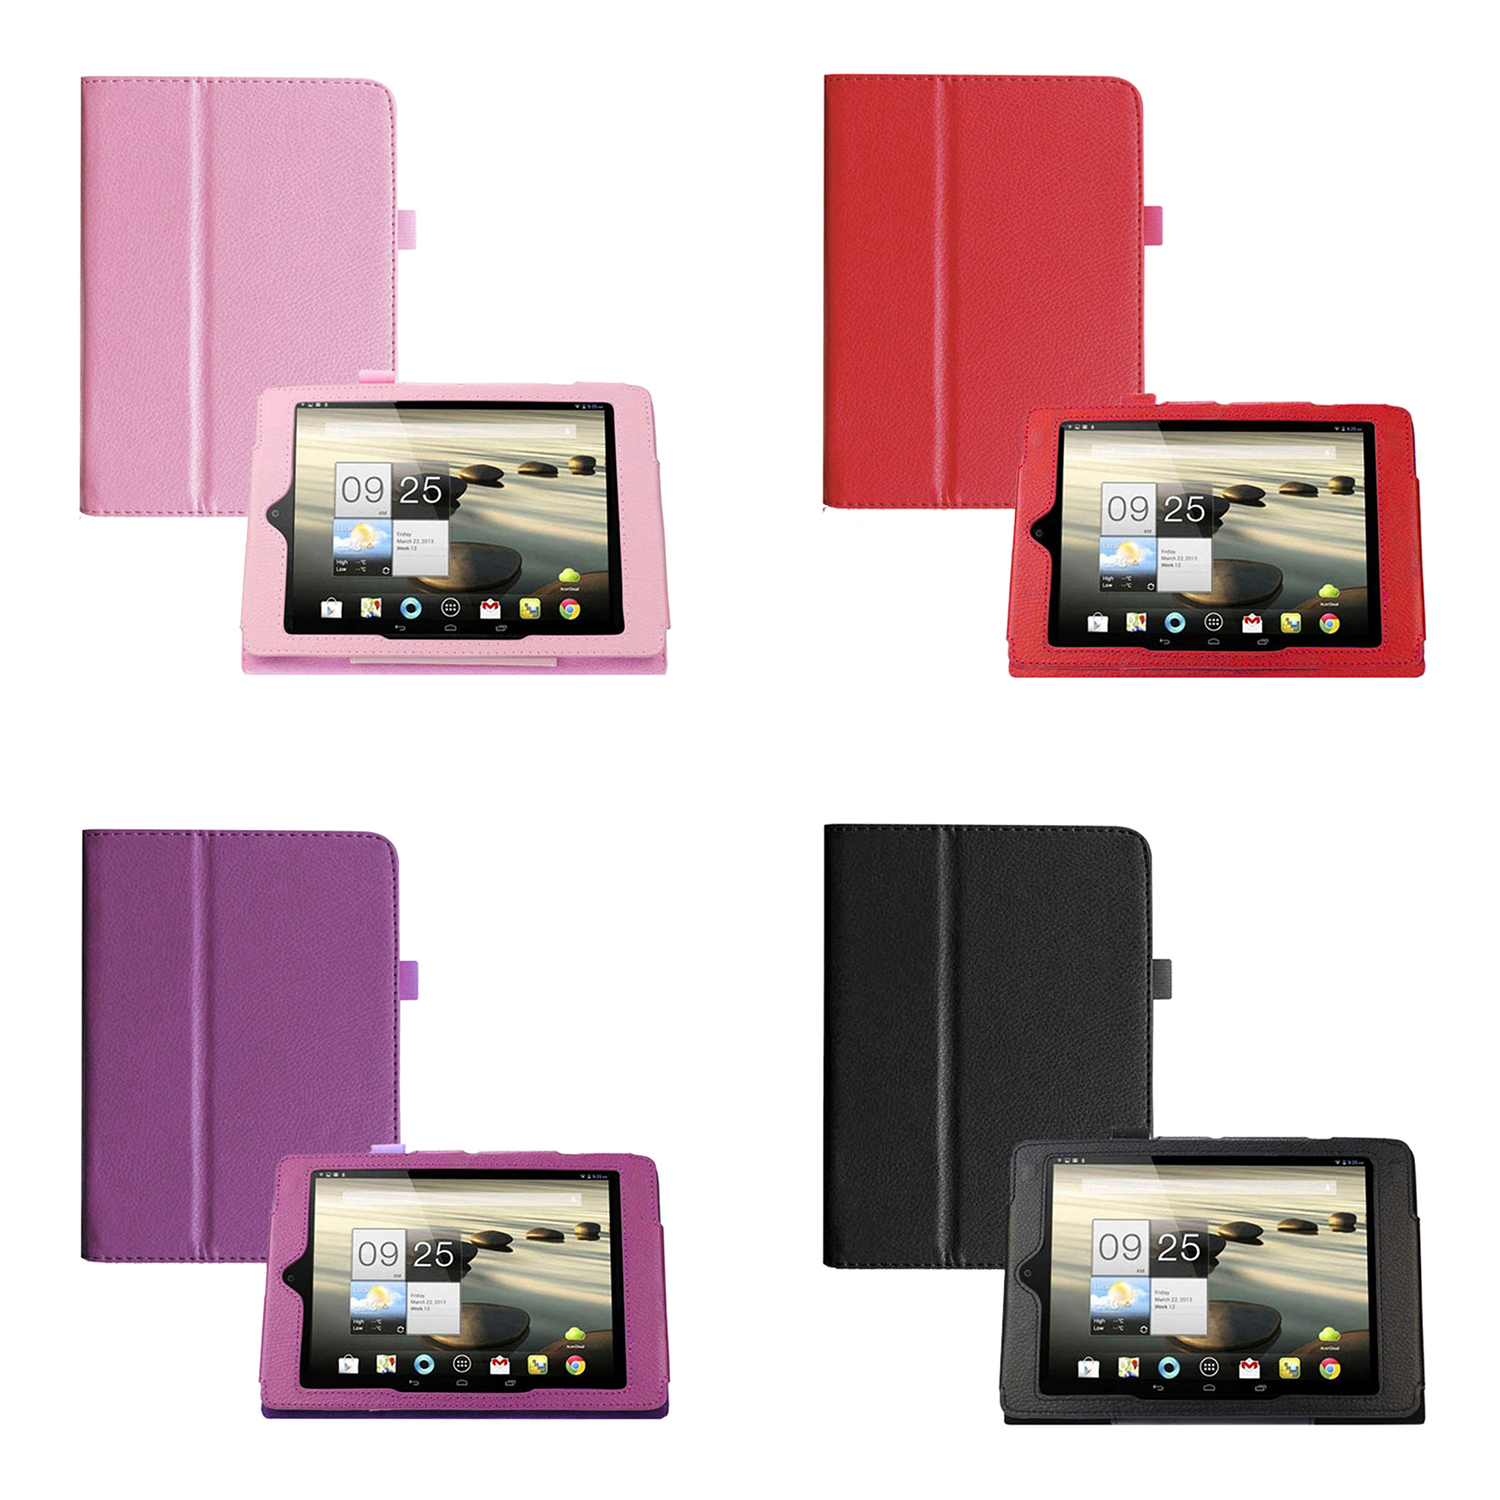 Folding Folio Leather Case Cover Stand for Acer Iconia A1 A1-810 7.9